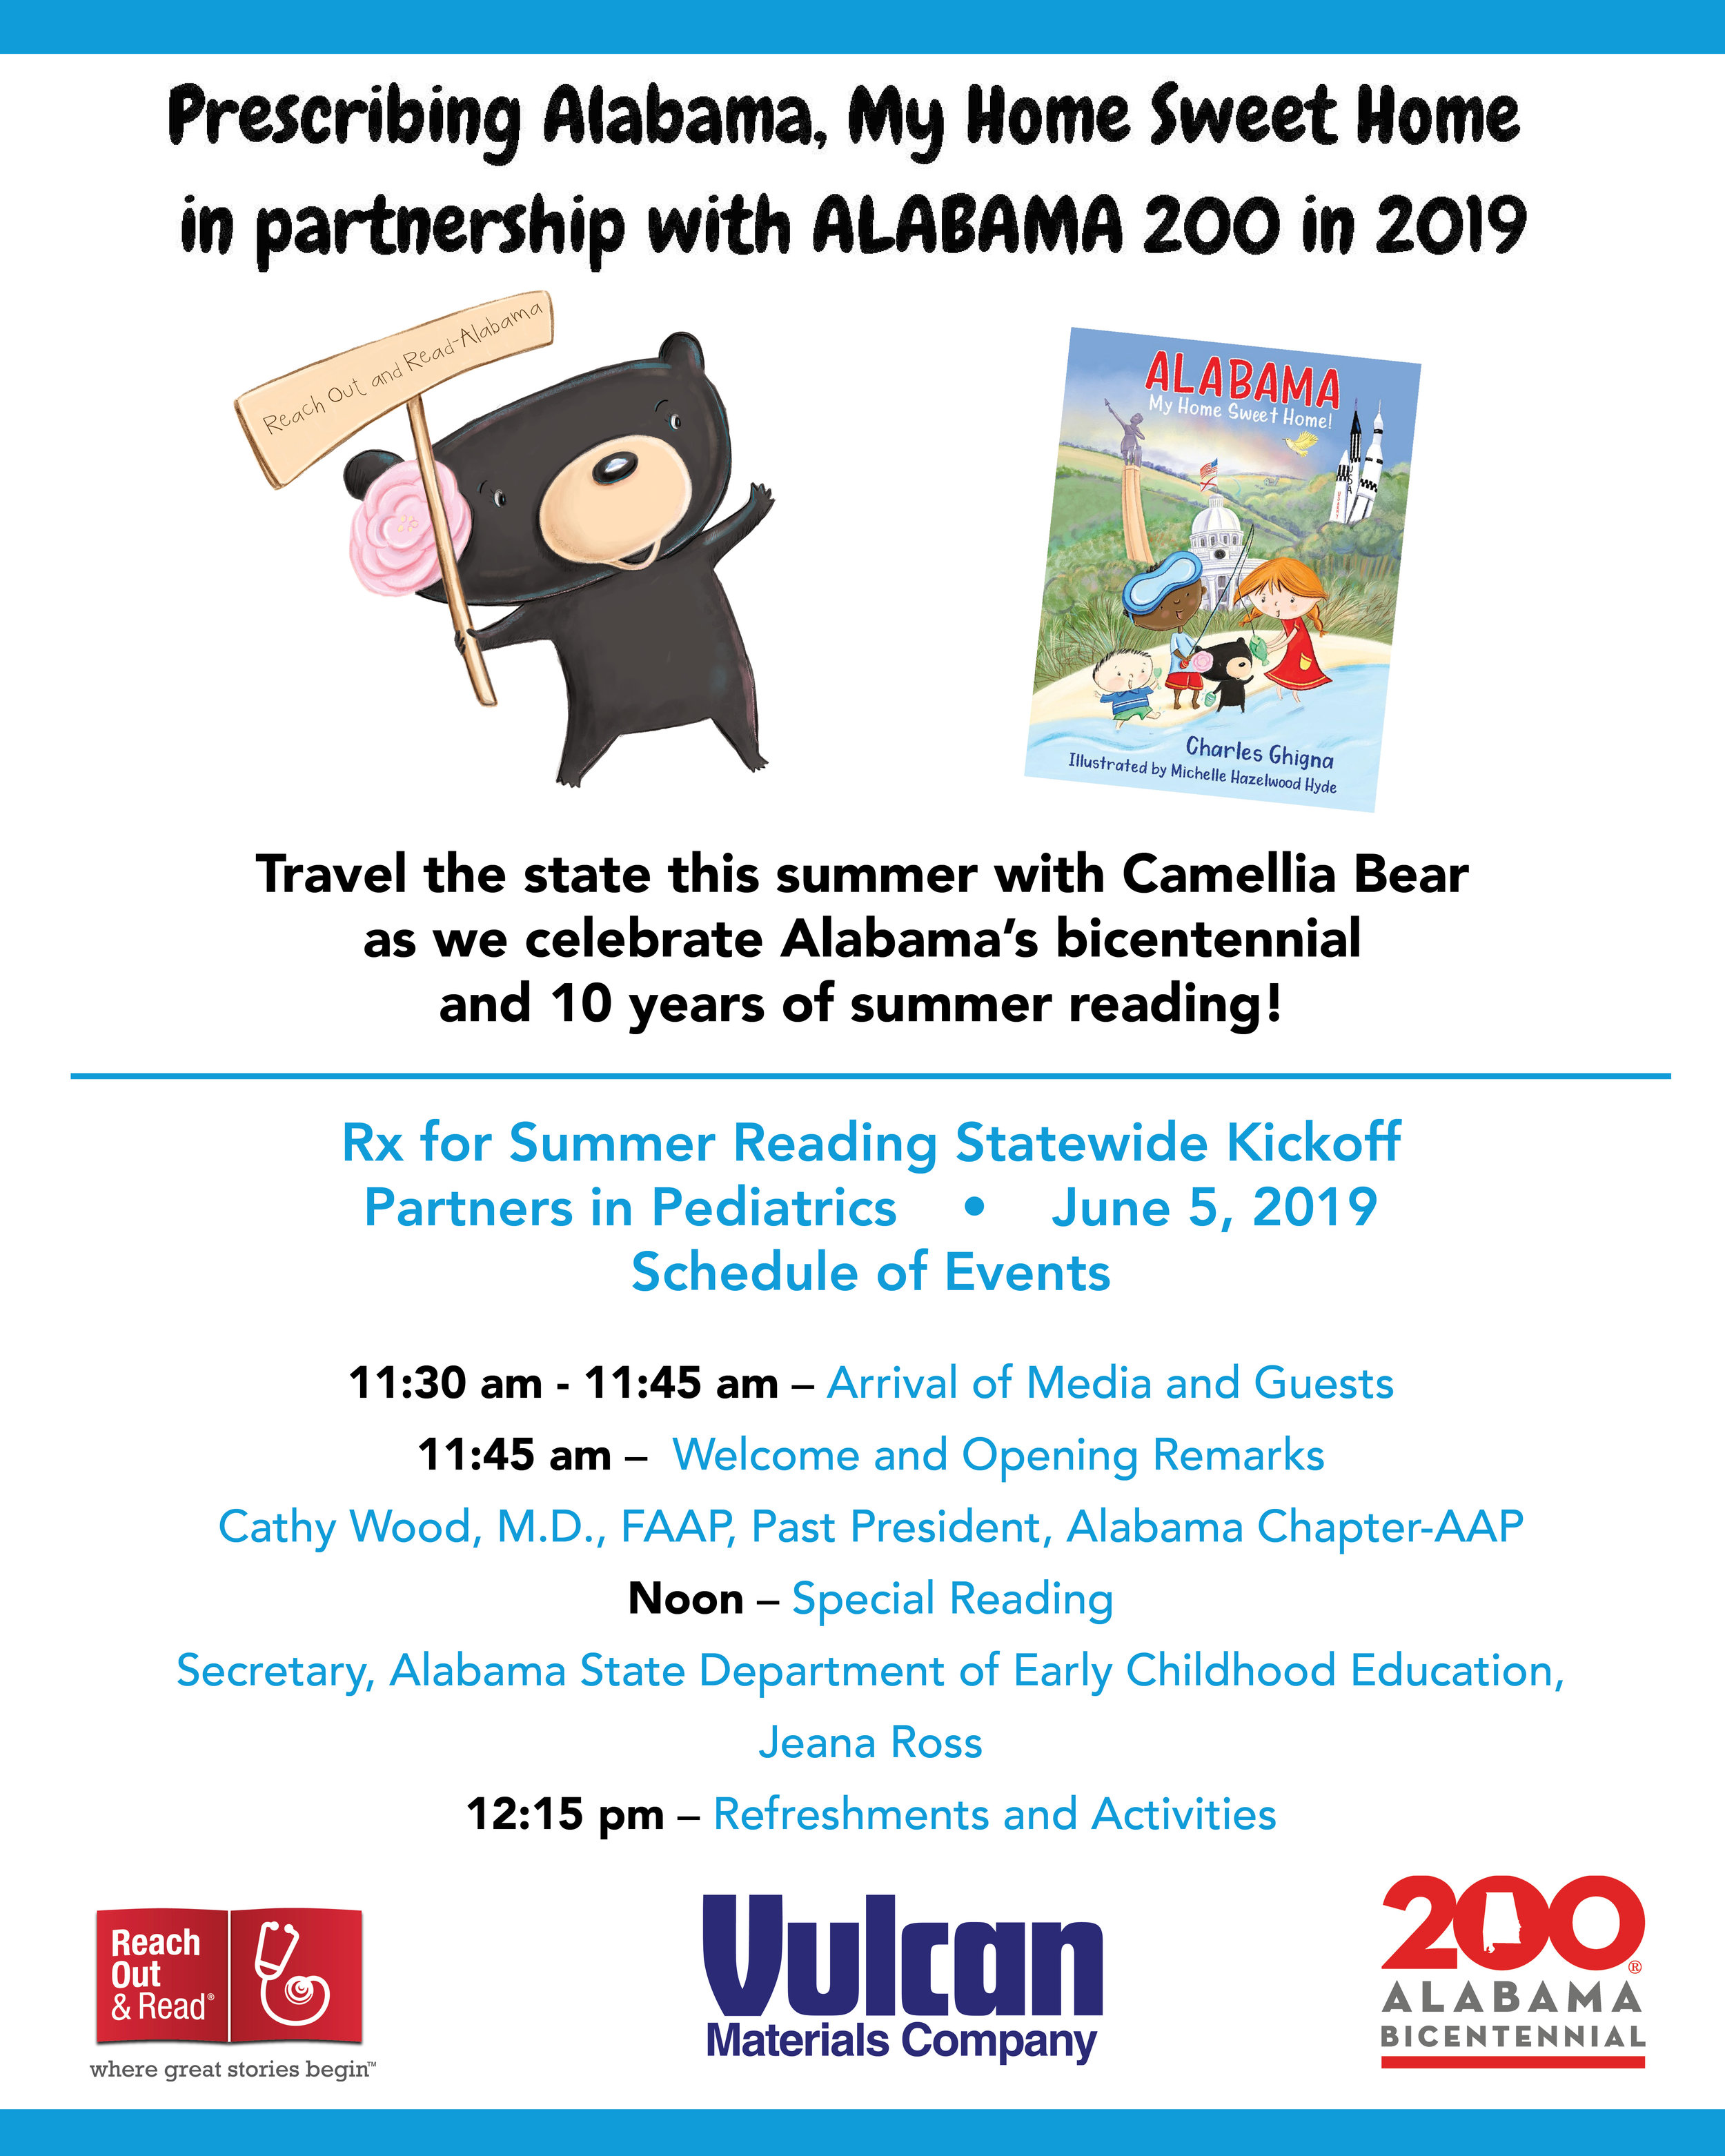 Reach Out and Read-Alabama 2019 Rx for Summer Reading Kickoff Invitation.jpg